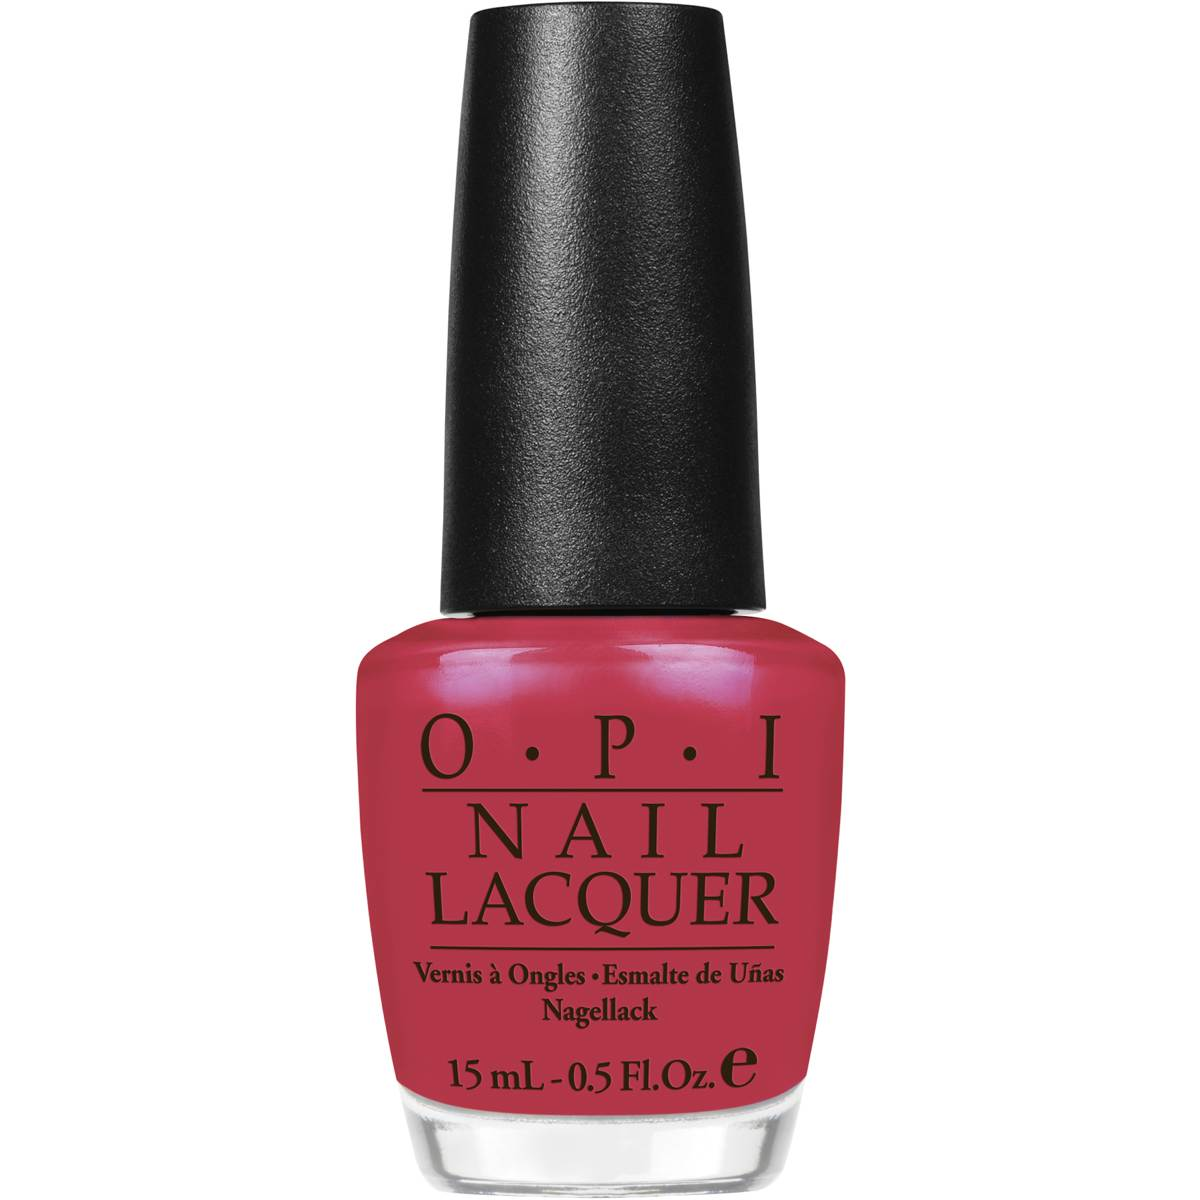 OPI Nail Lacquer, The Color of Minnie